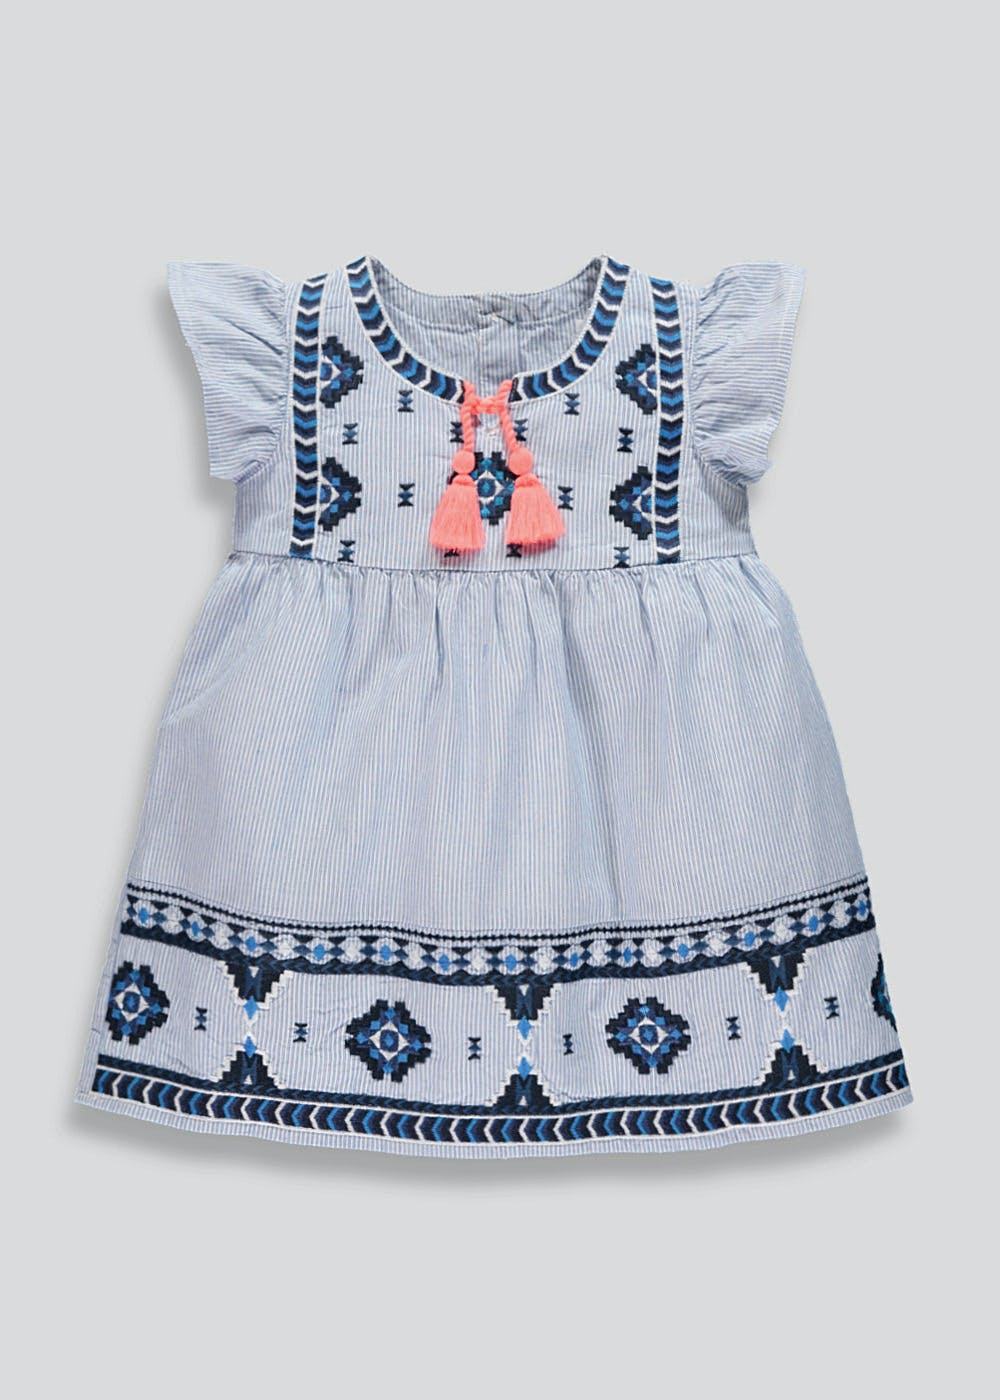 The Cheapest Price Next Girls Soft Blue White Striped Embroided Dress Rabbits Pockets Girls' Clothing (0-24 Months) 12-18mths Cheap Sales 50%